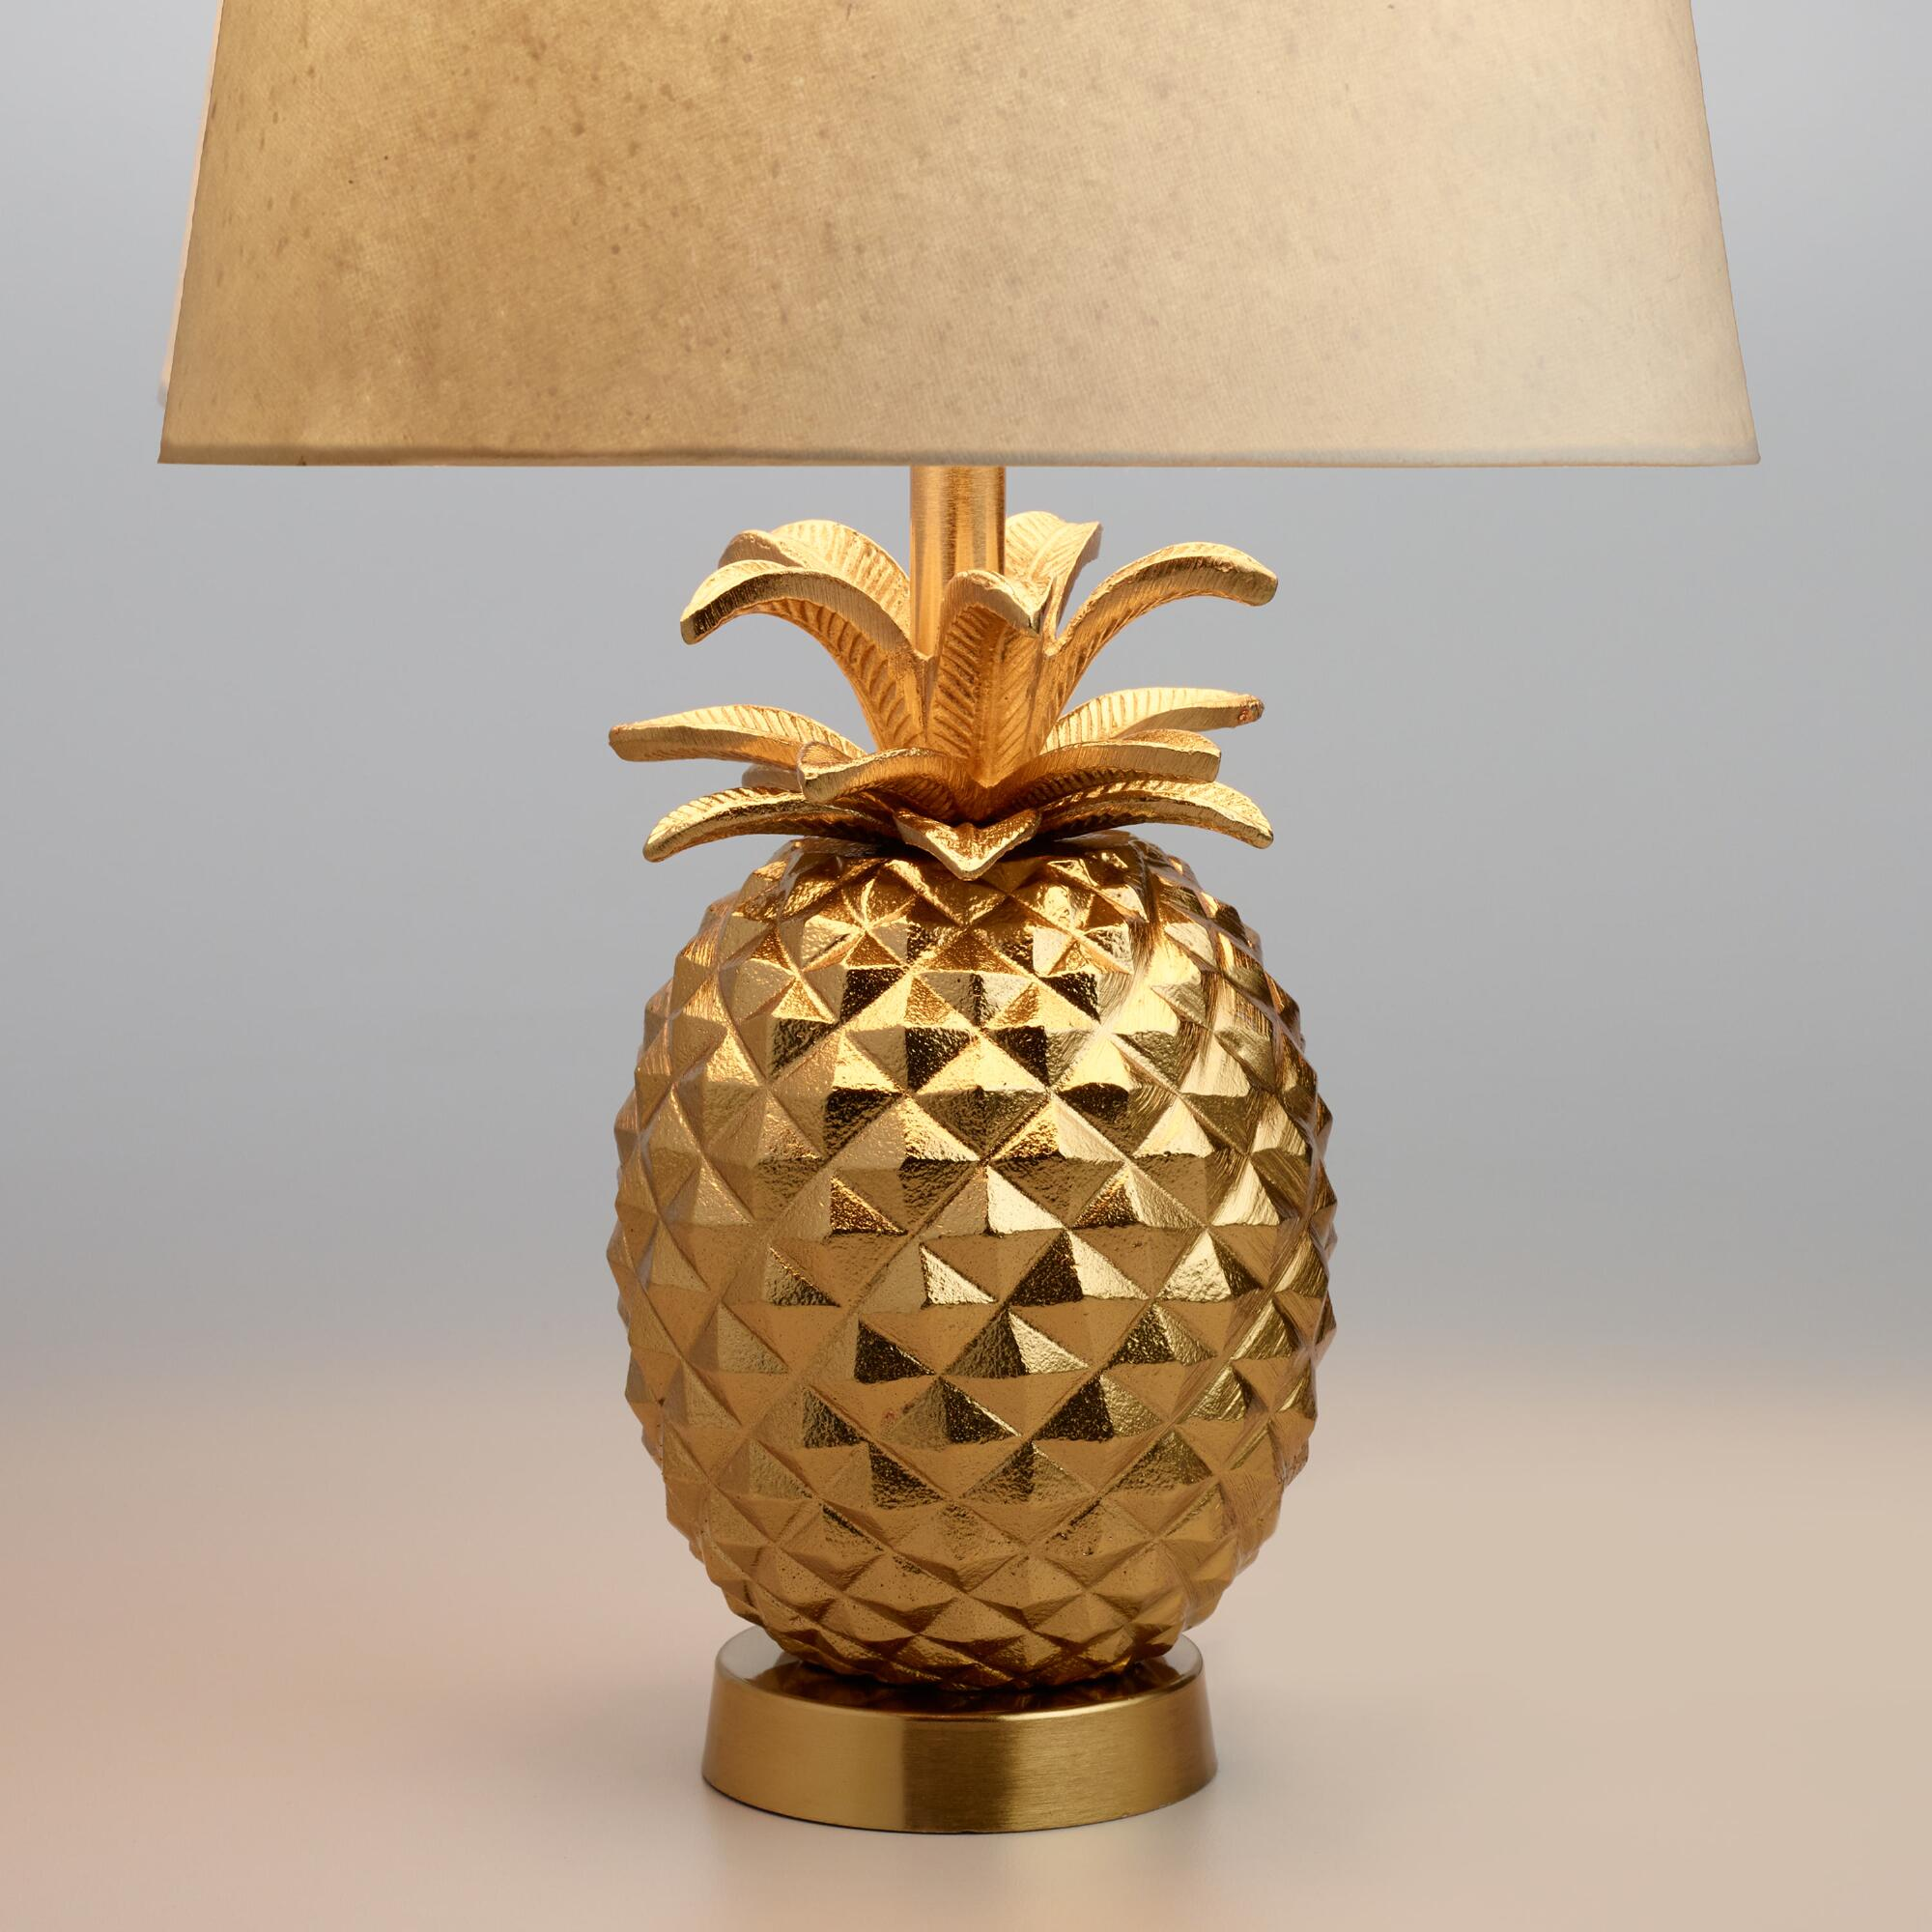 accent lighting unique table lamps world market iipsrv fcgi lamp brass pineapple base light wood nightstand beach bathroom decor long narrow end contemporary annie sloan chalk